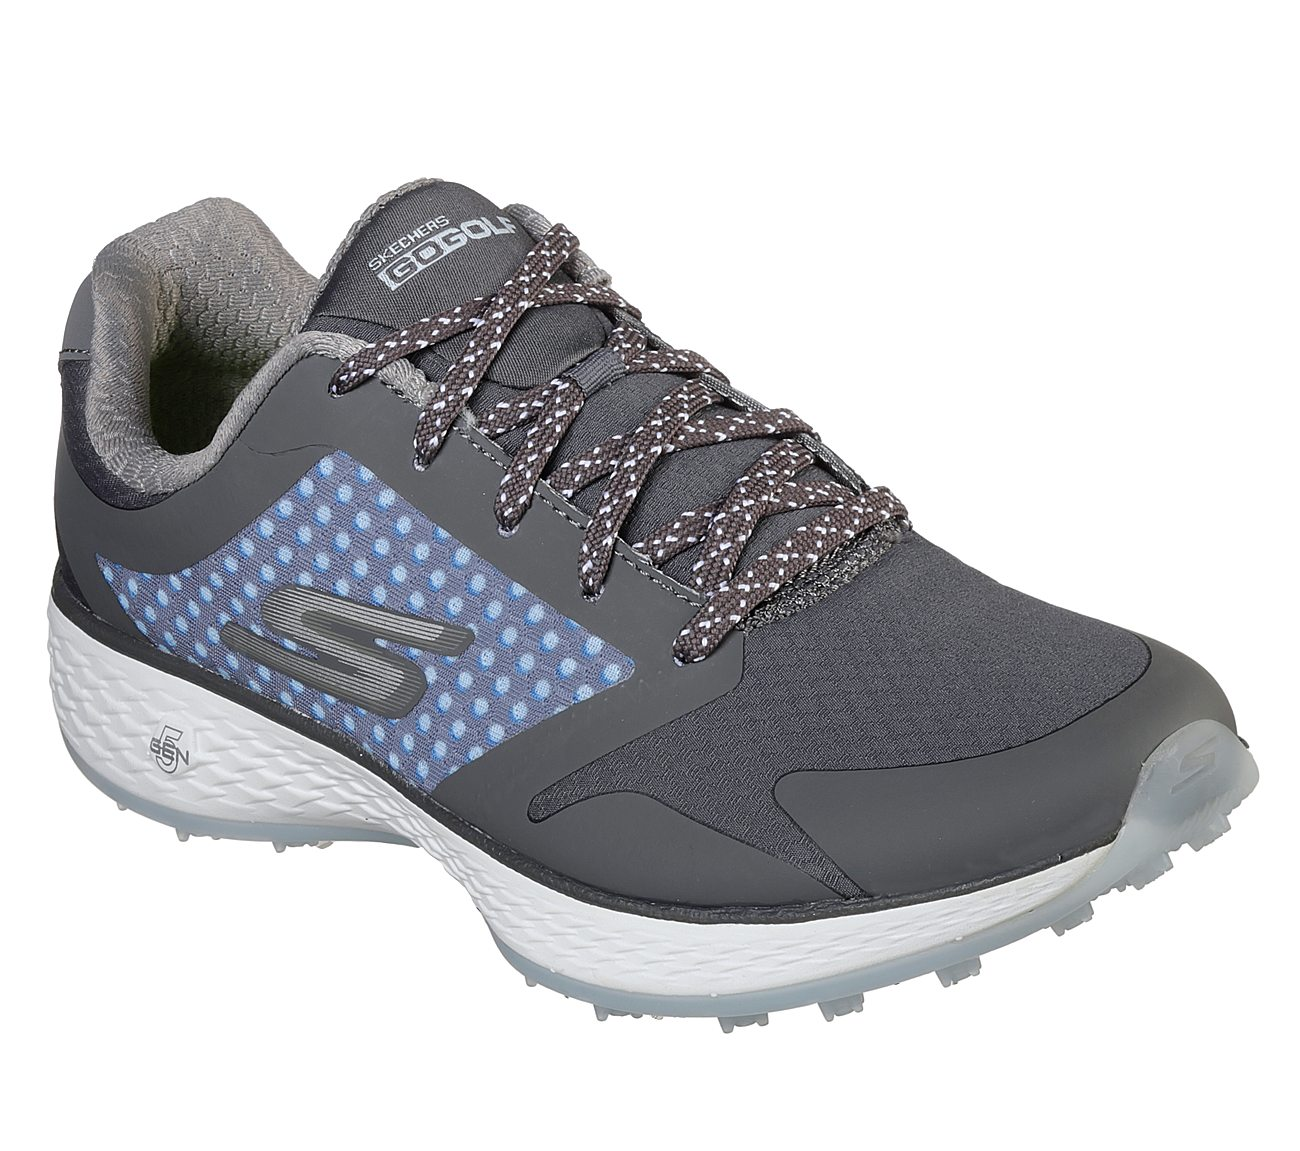 Skechers Women's Go Golf Eagle Golf Shoe - Lead